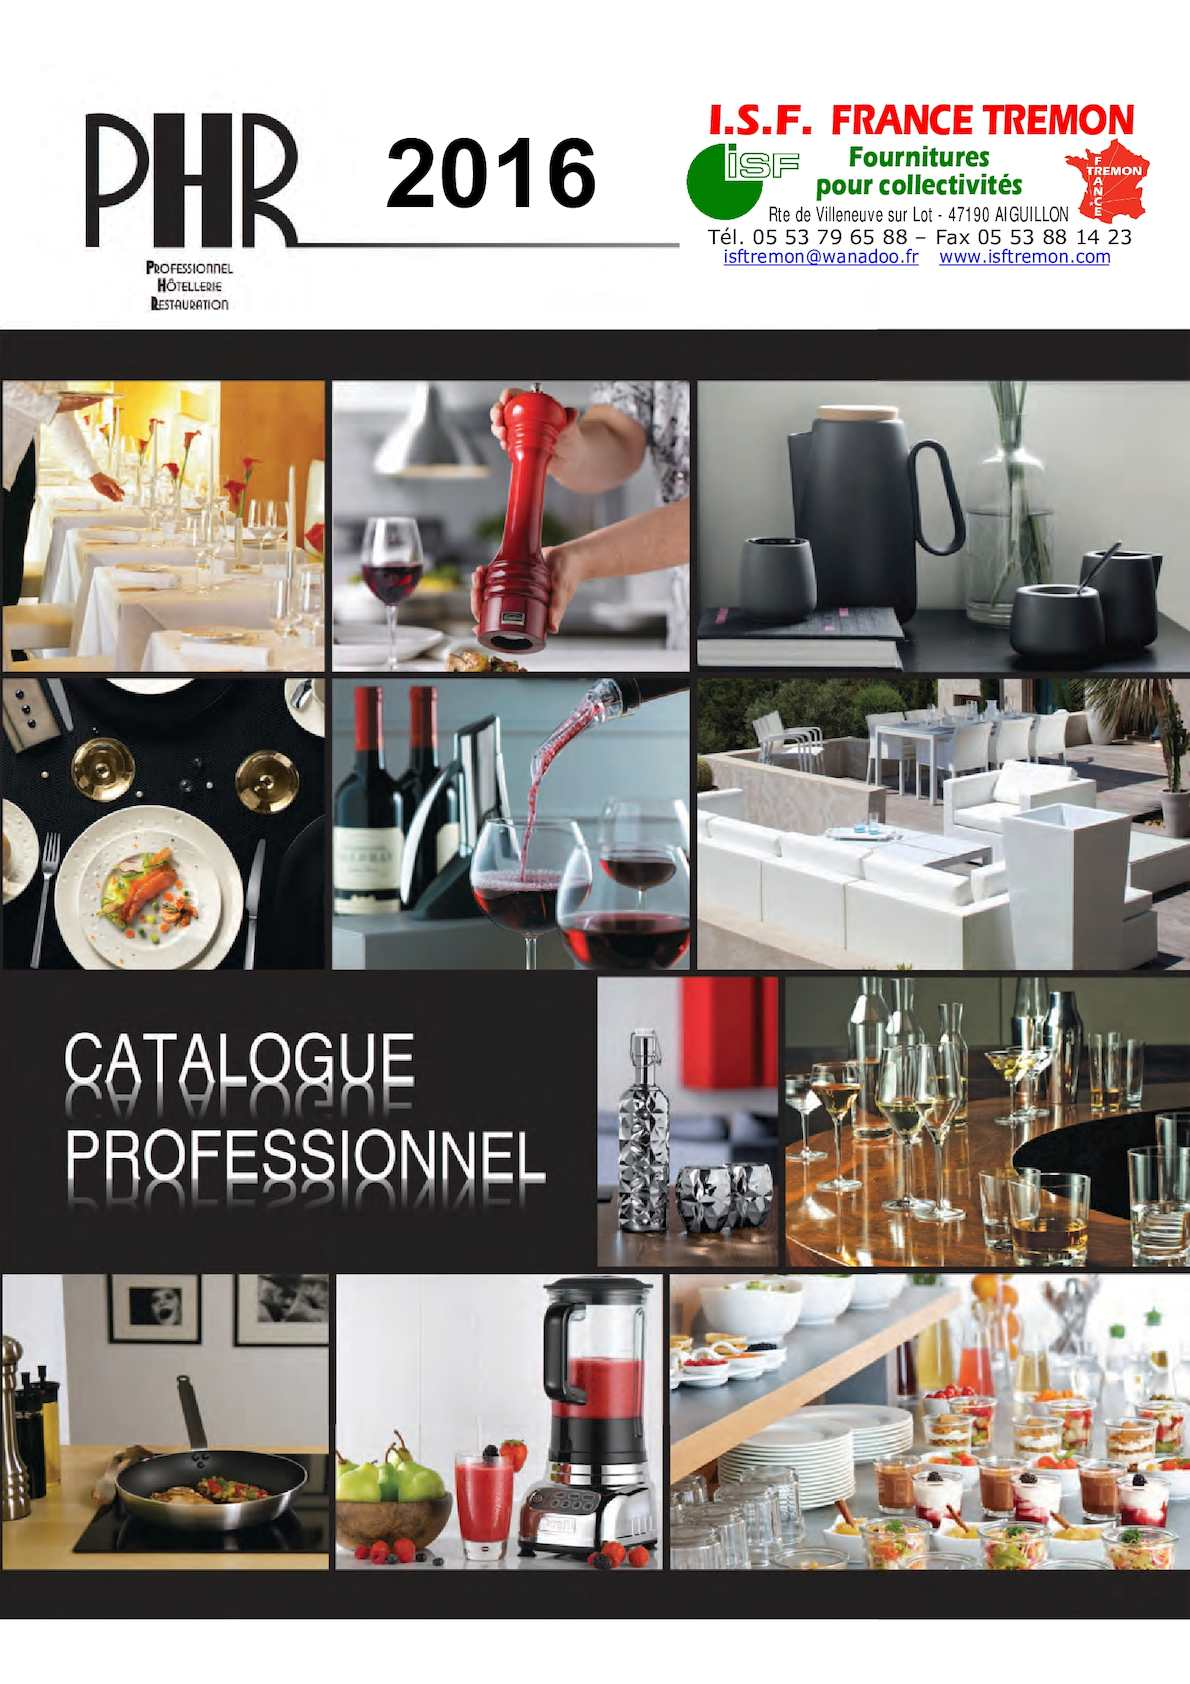 Table Bistrot 4 Personnes Frais Calaméo Catalogue Phr isf 2016 Of 24 Inspirant Table Bistrot 4 Personnes